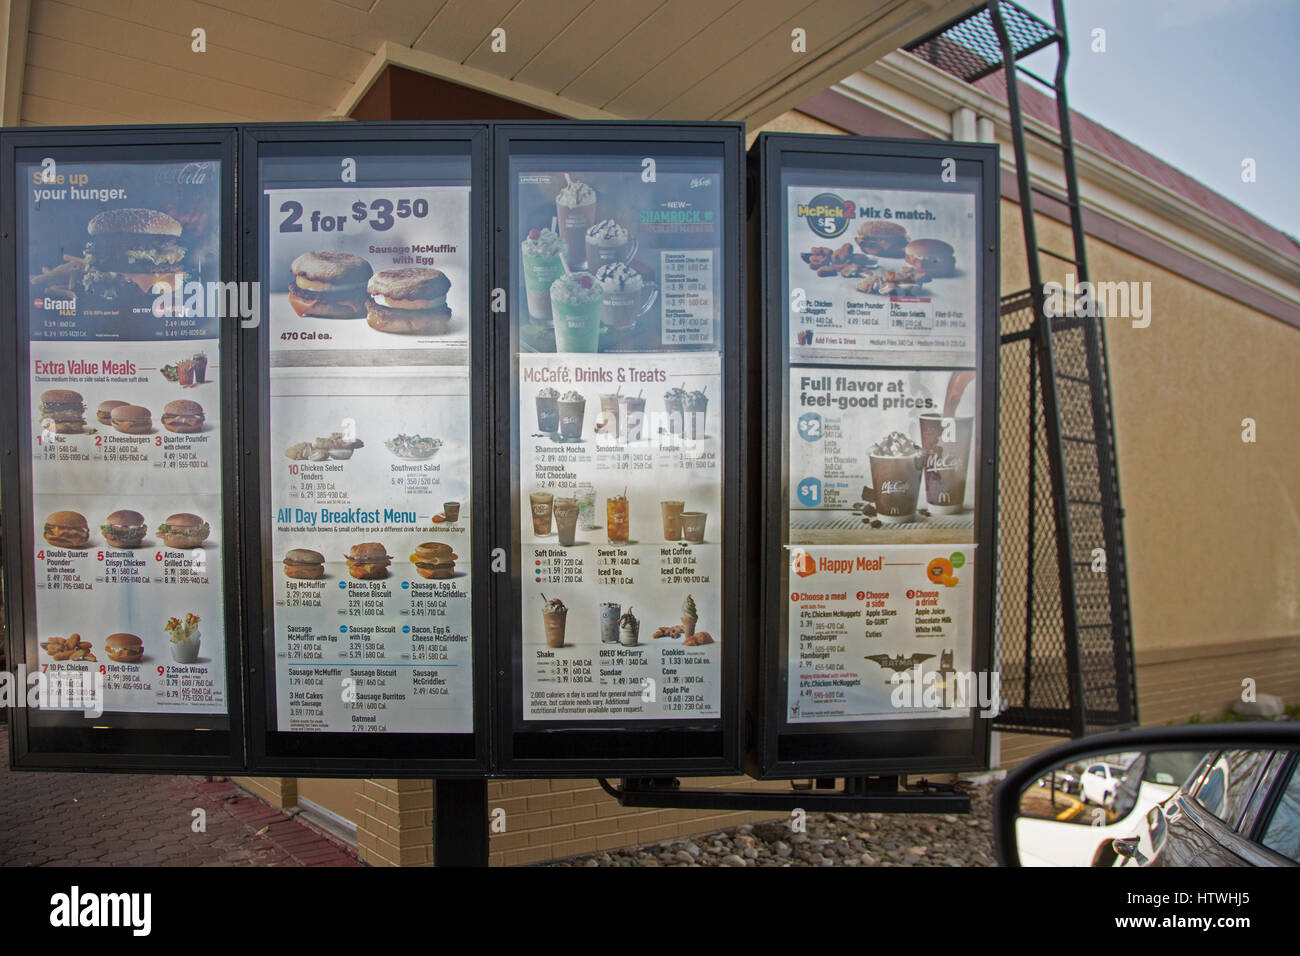 Mcdonalds Drive Thru Stock Photos & Mcdonalds Drive Thru Stock